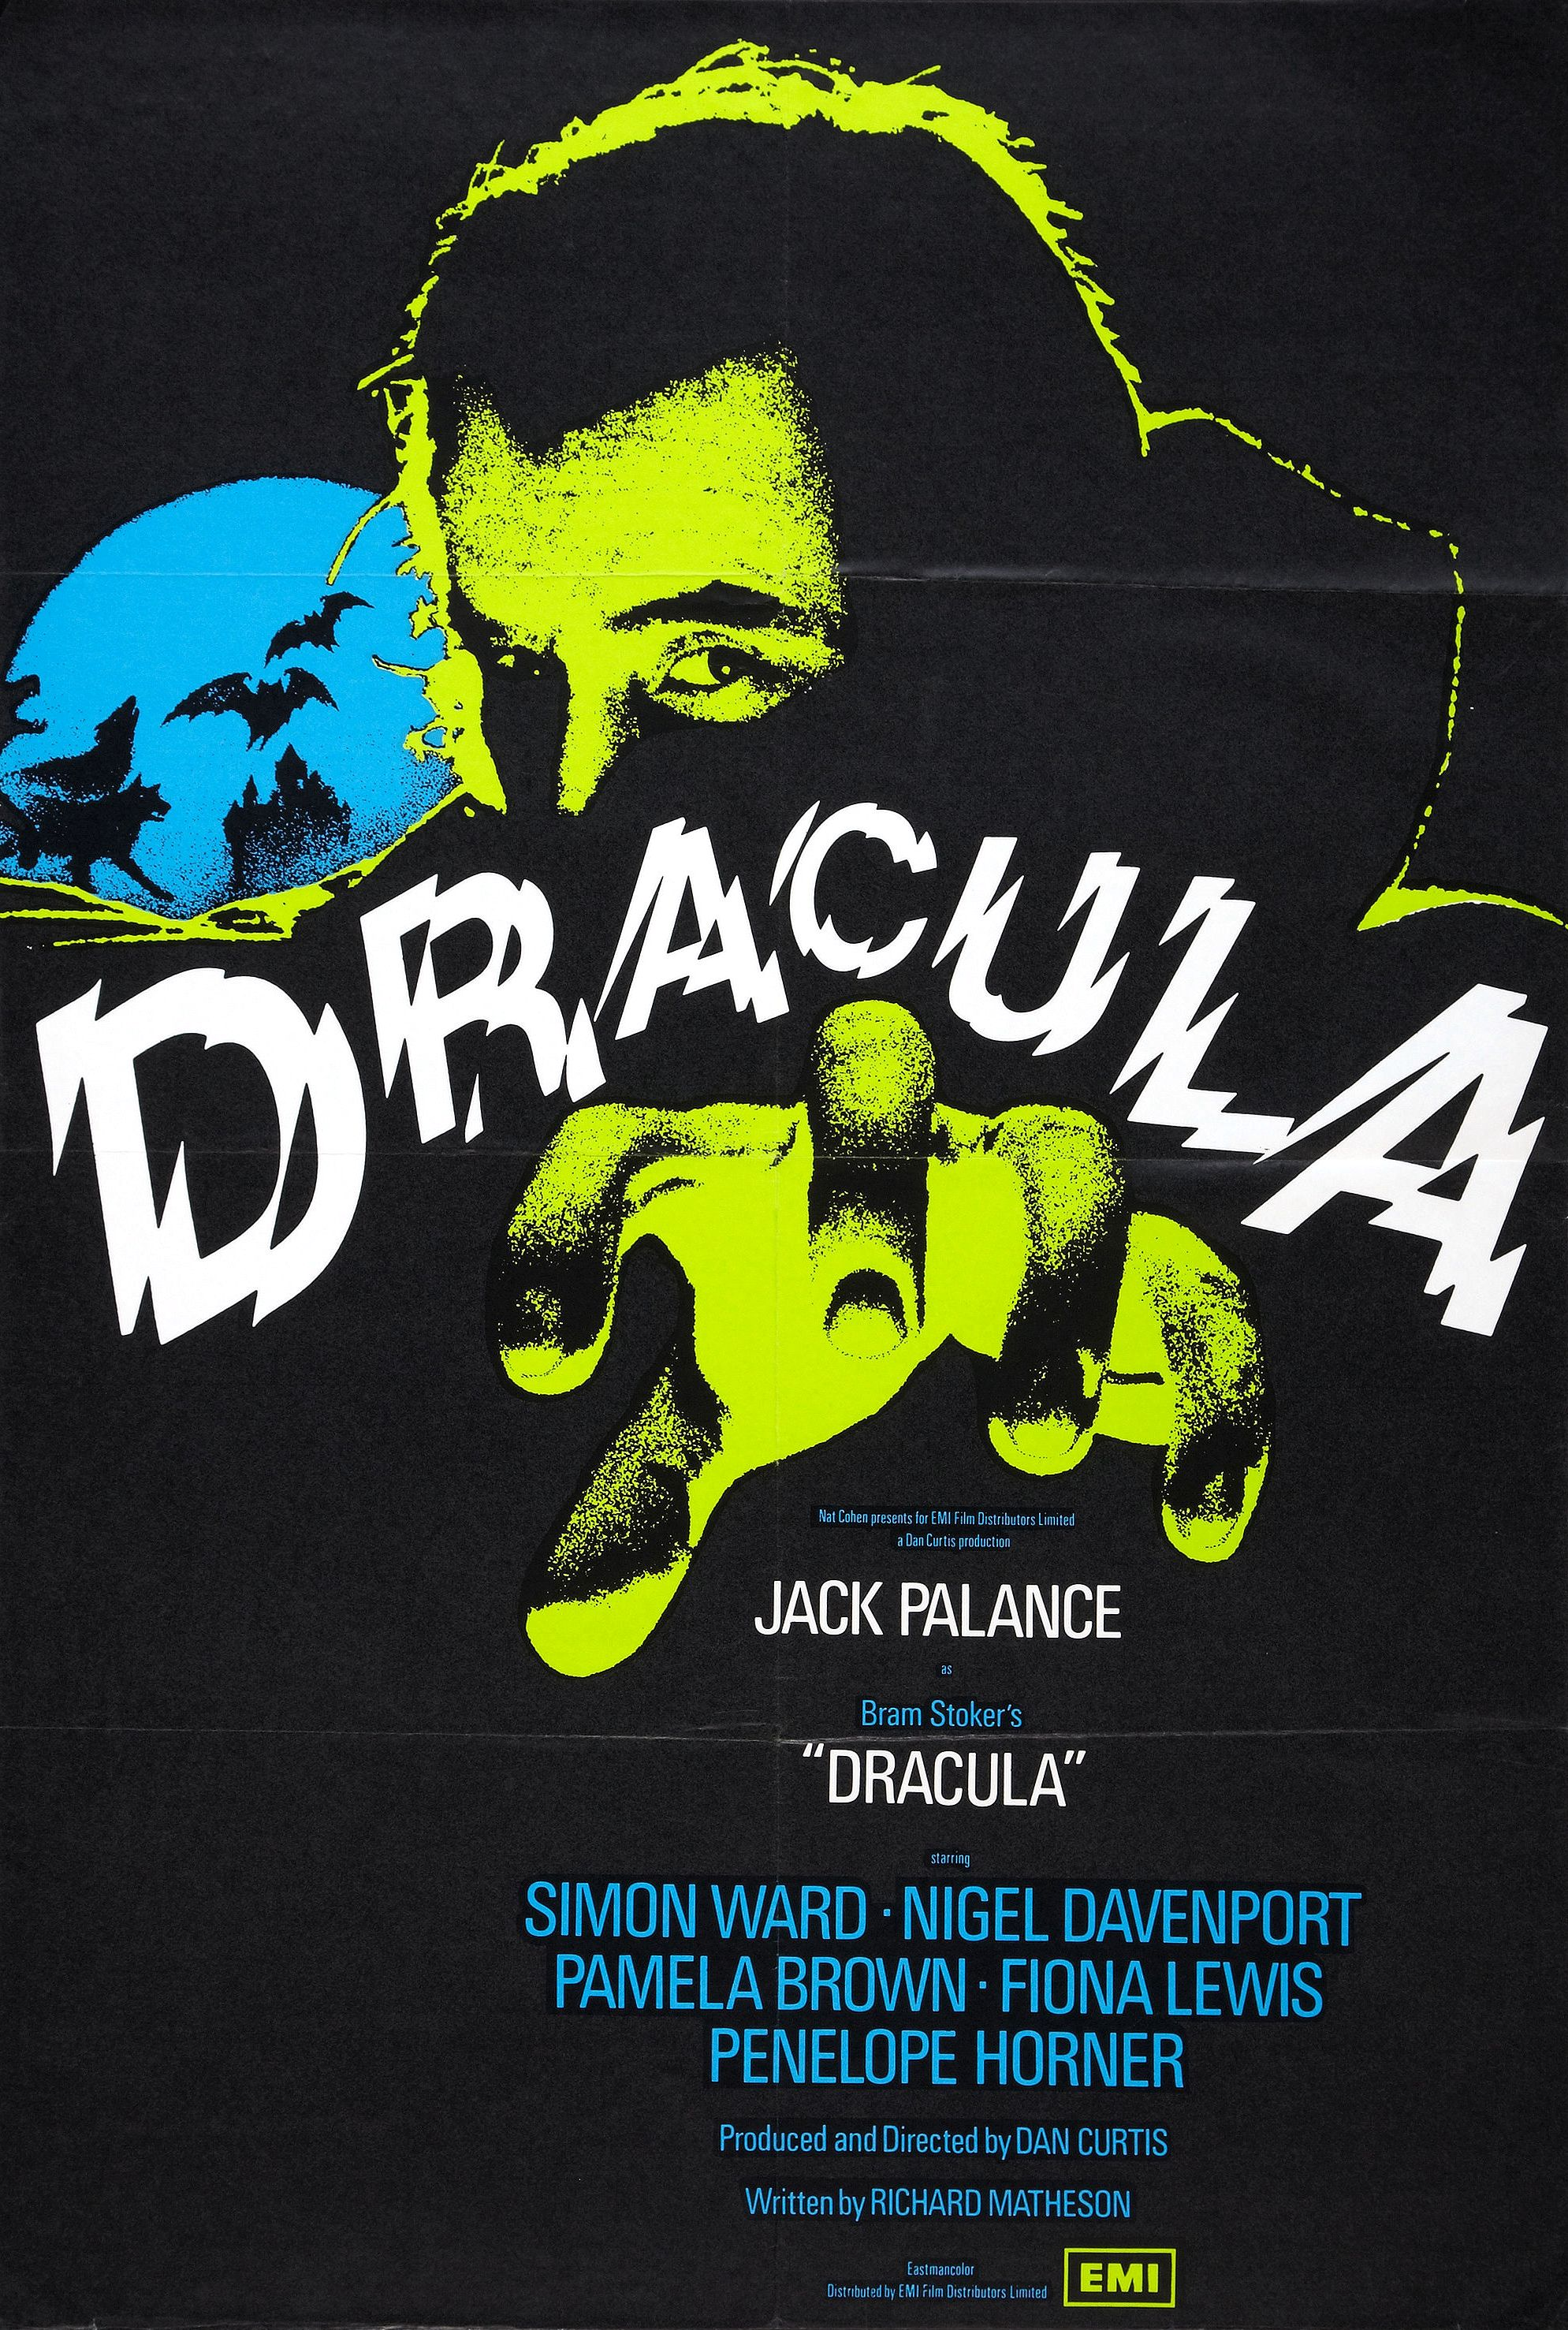 comparing strokers and coppolas versions of the movie dracula Looking at characterization in stoker's 'dracula' to understand  ideals of the victorian woman as depicted in 'dracula  development than in a whole movie.